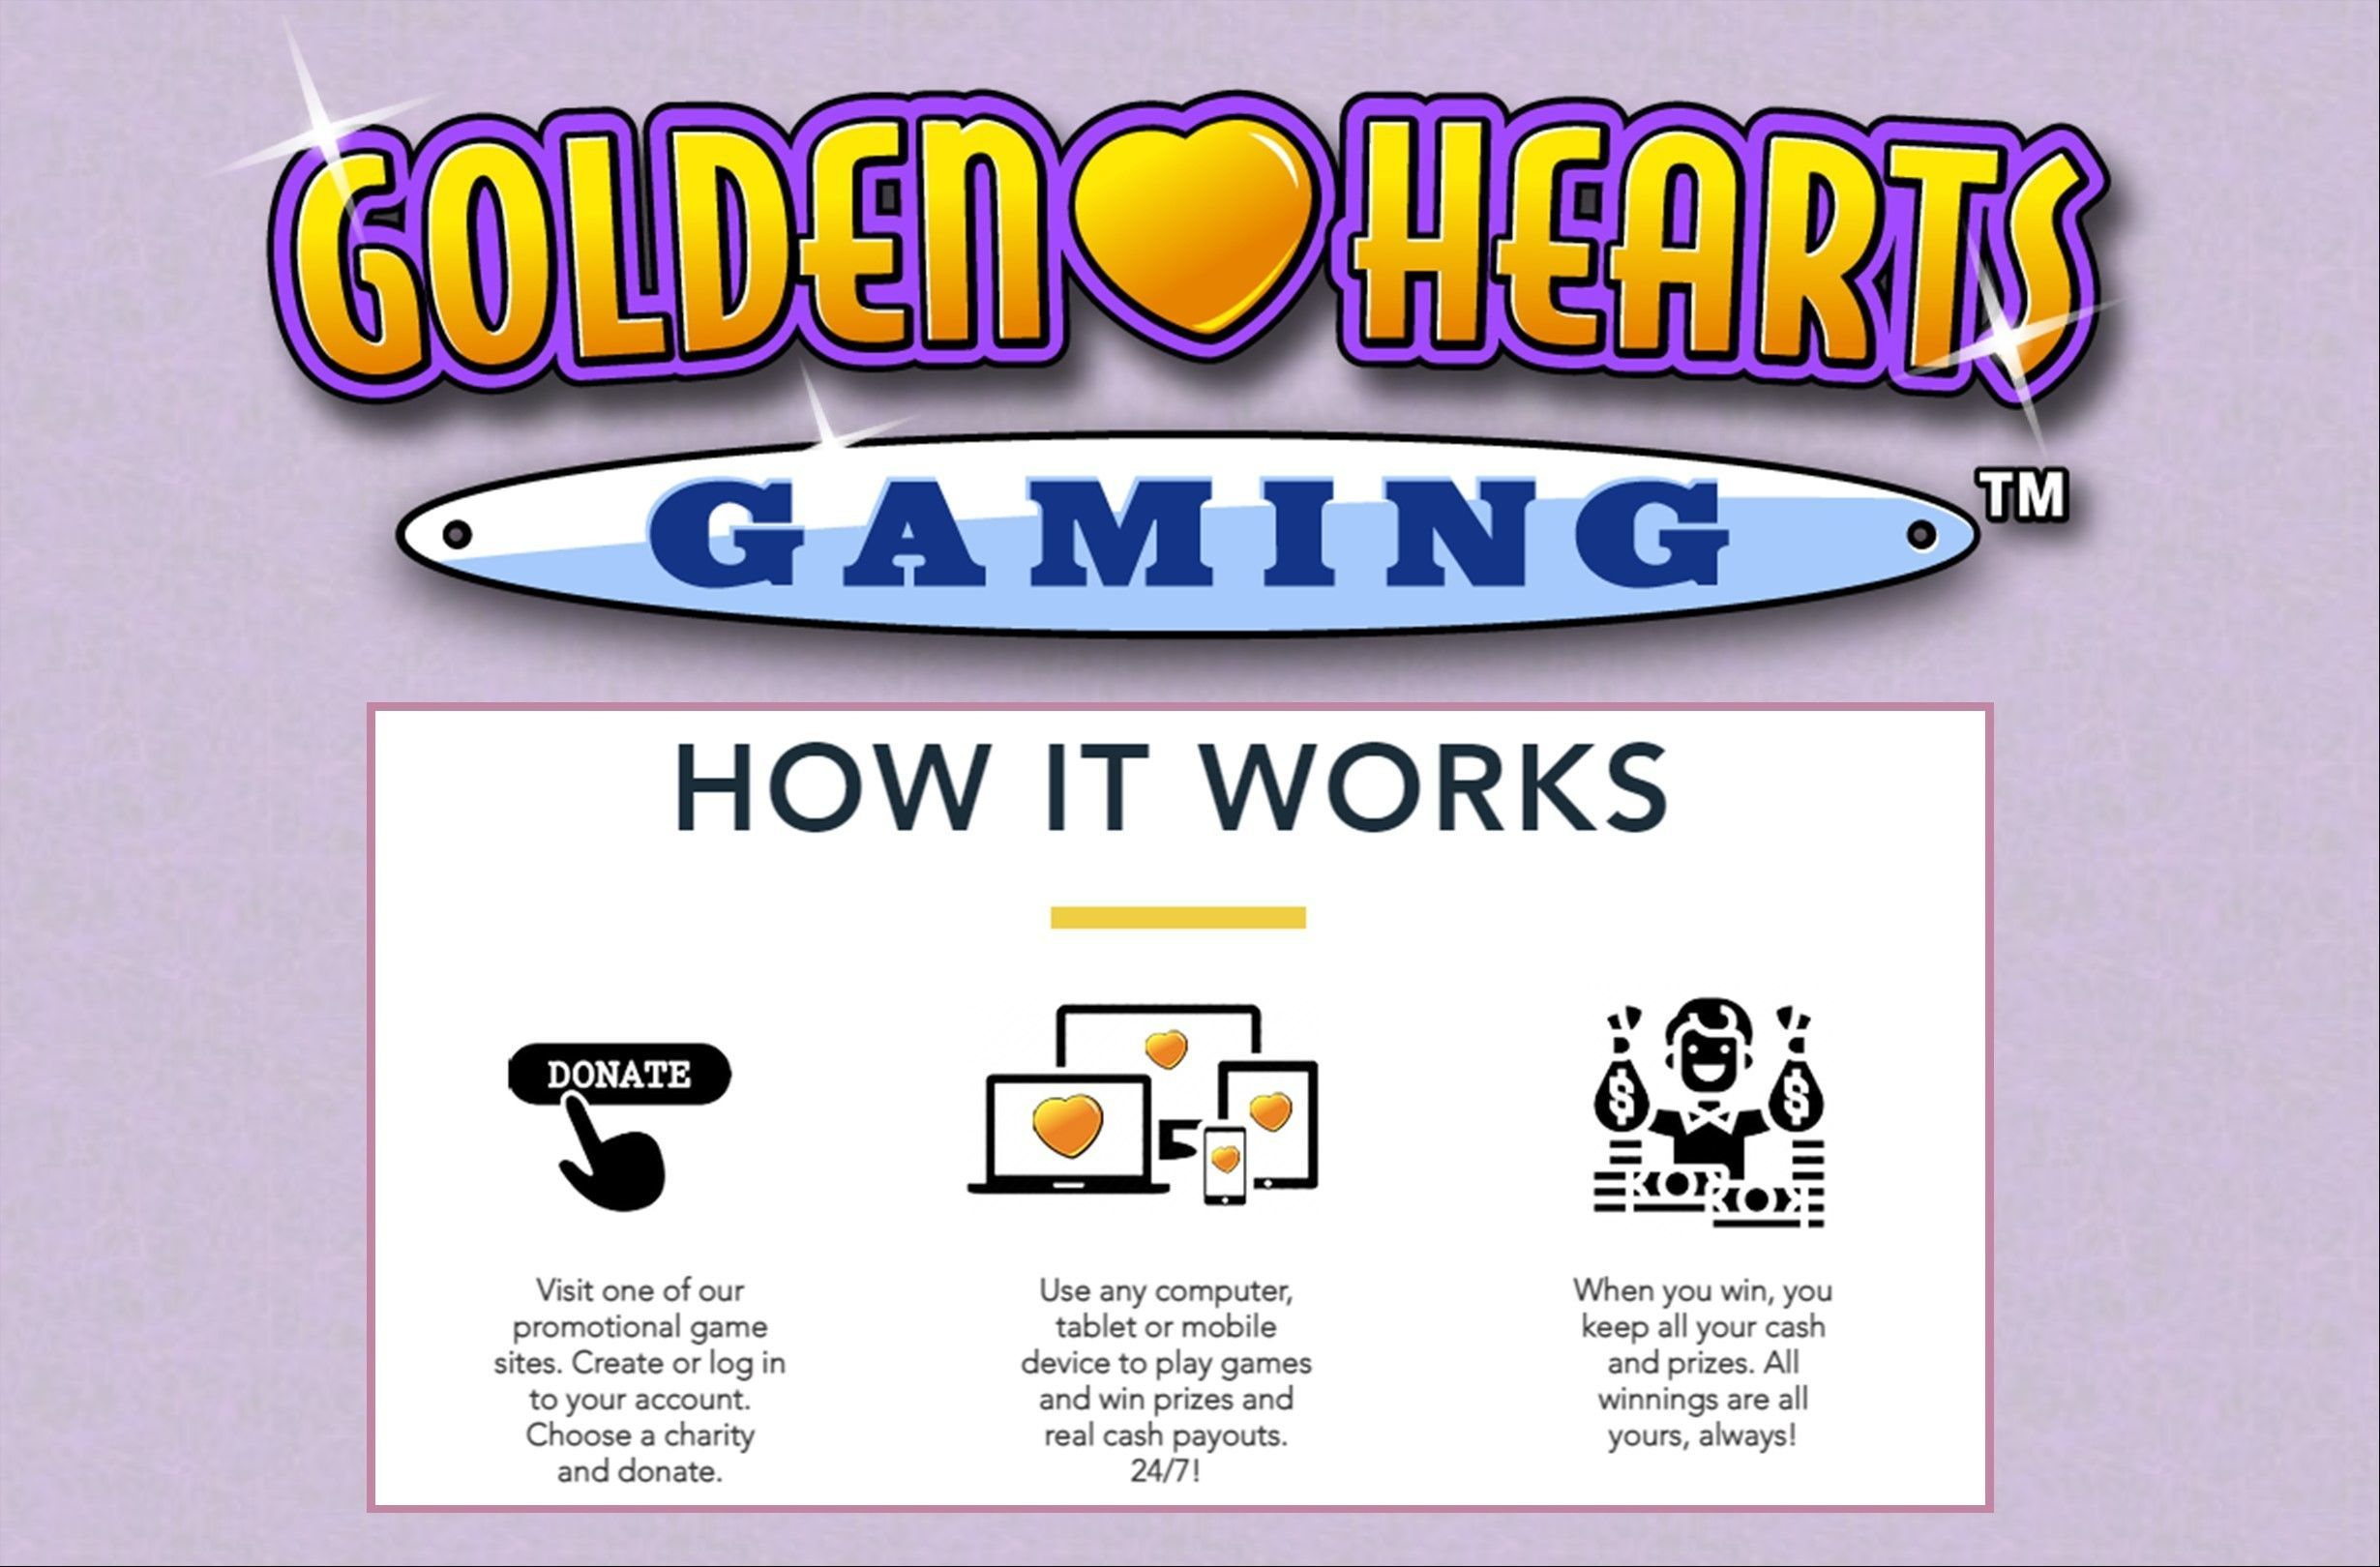 Play Games. Win Prizes. Do Good!